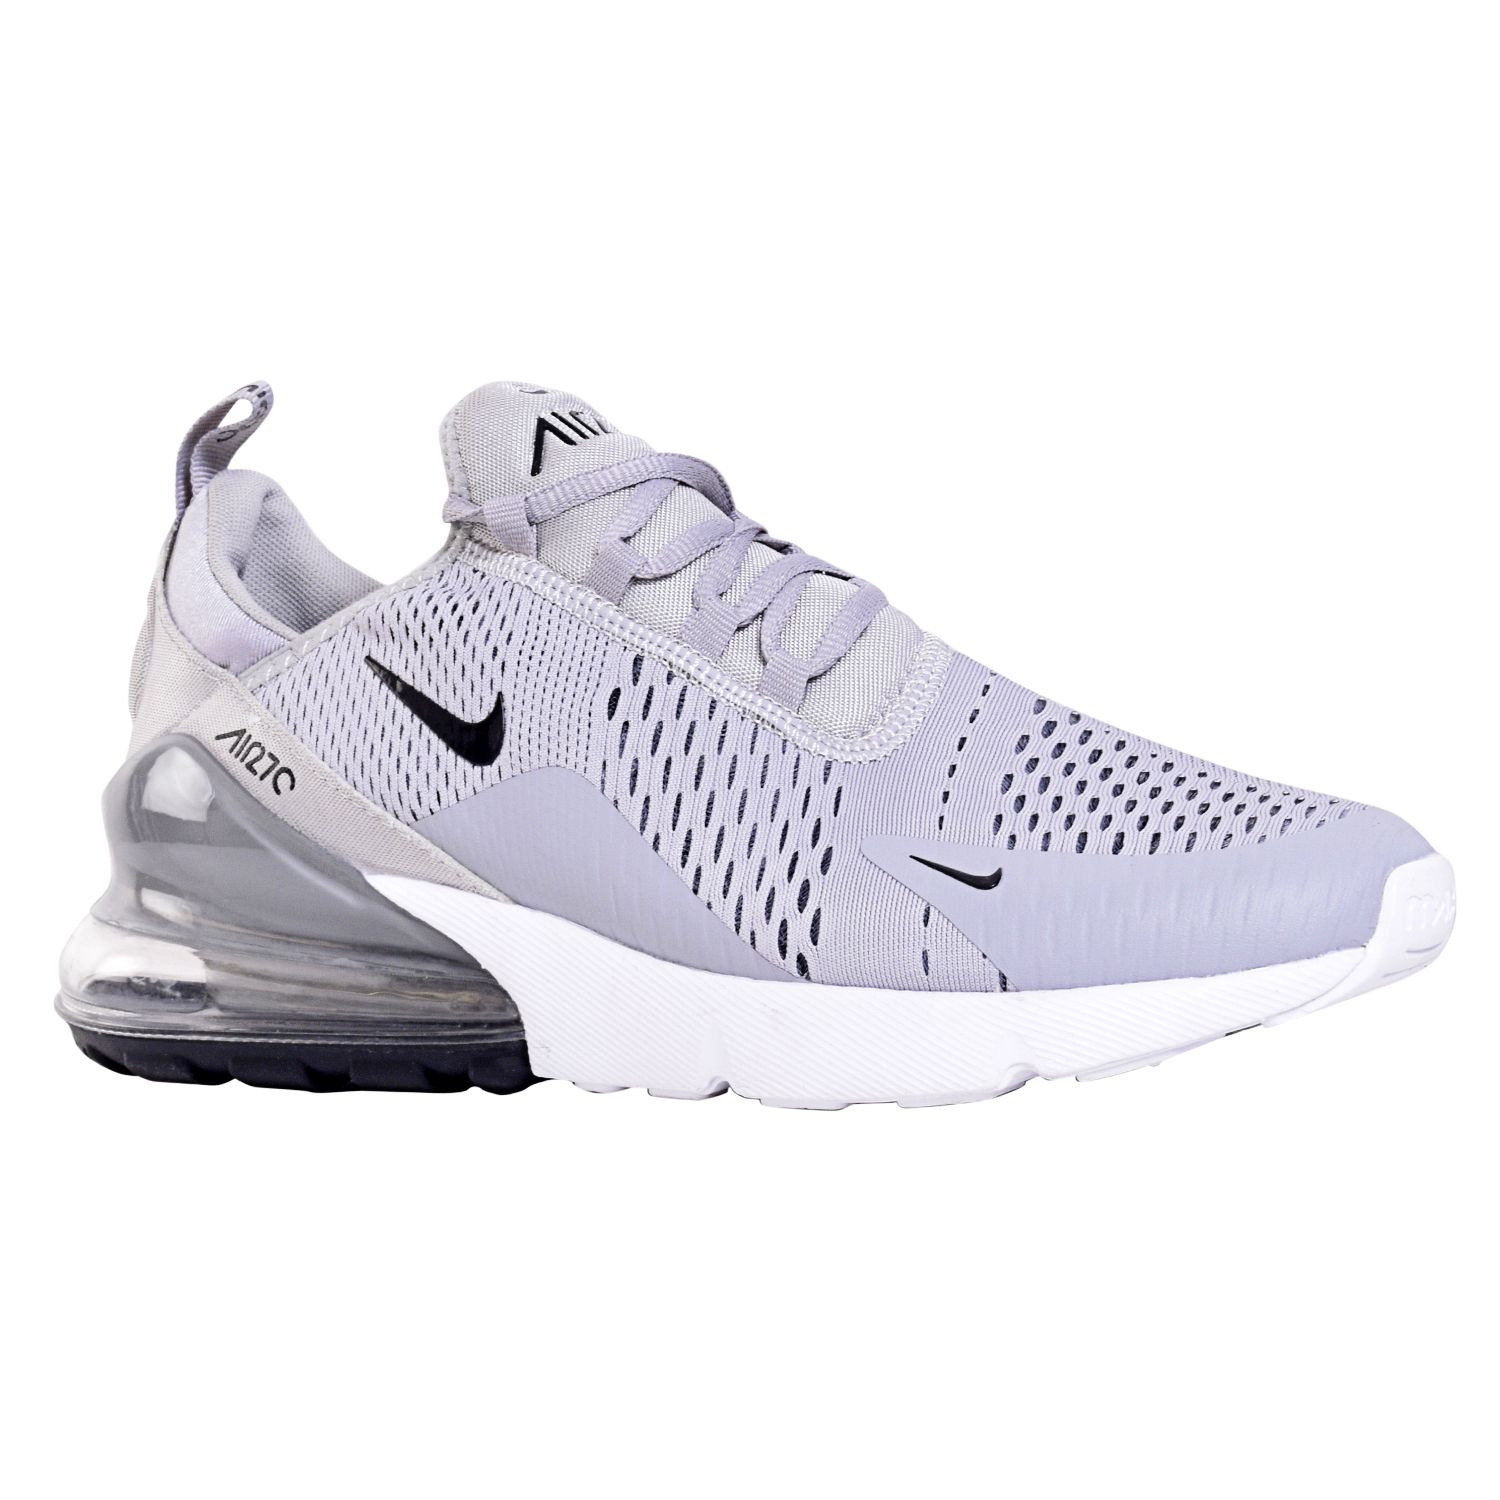 Air Max Running Nike Air Max 270 Silver Running Shoes